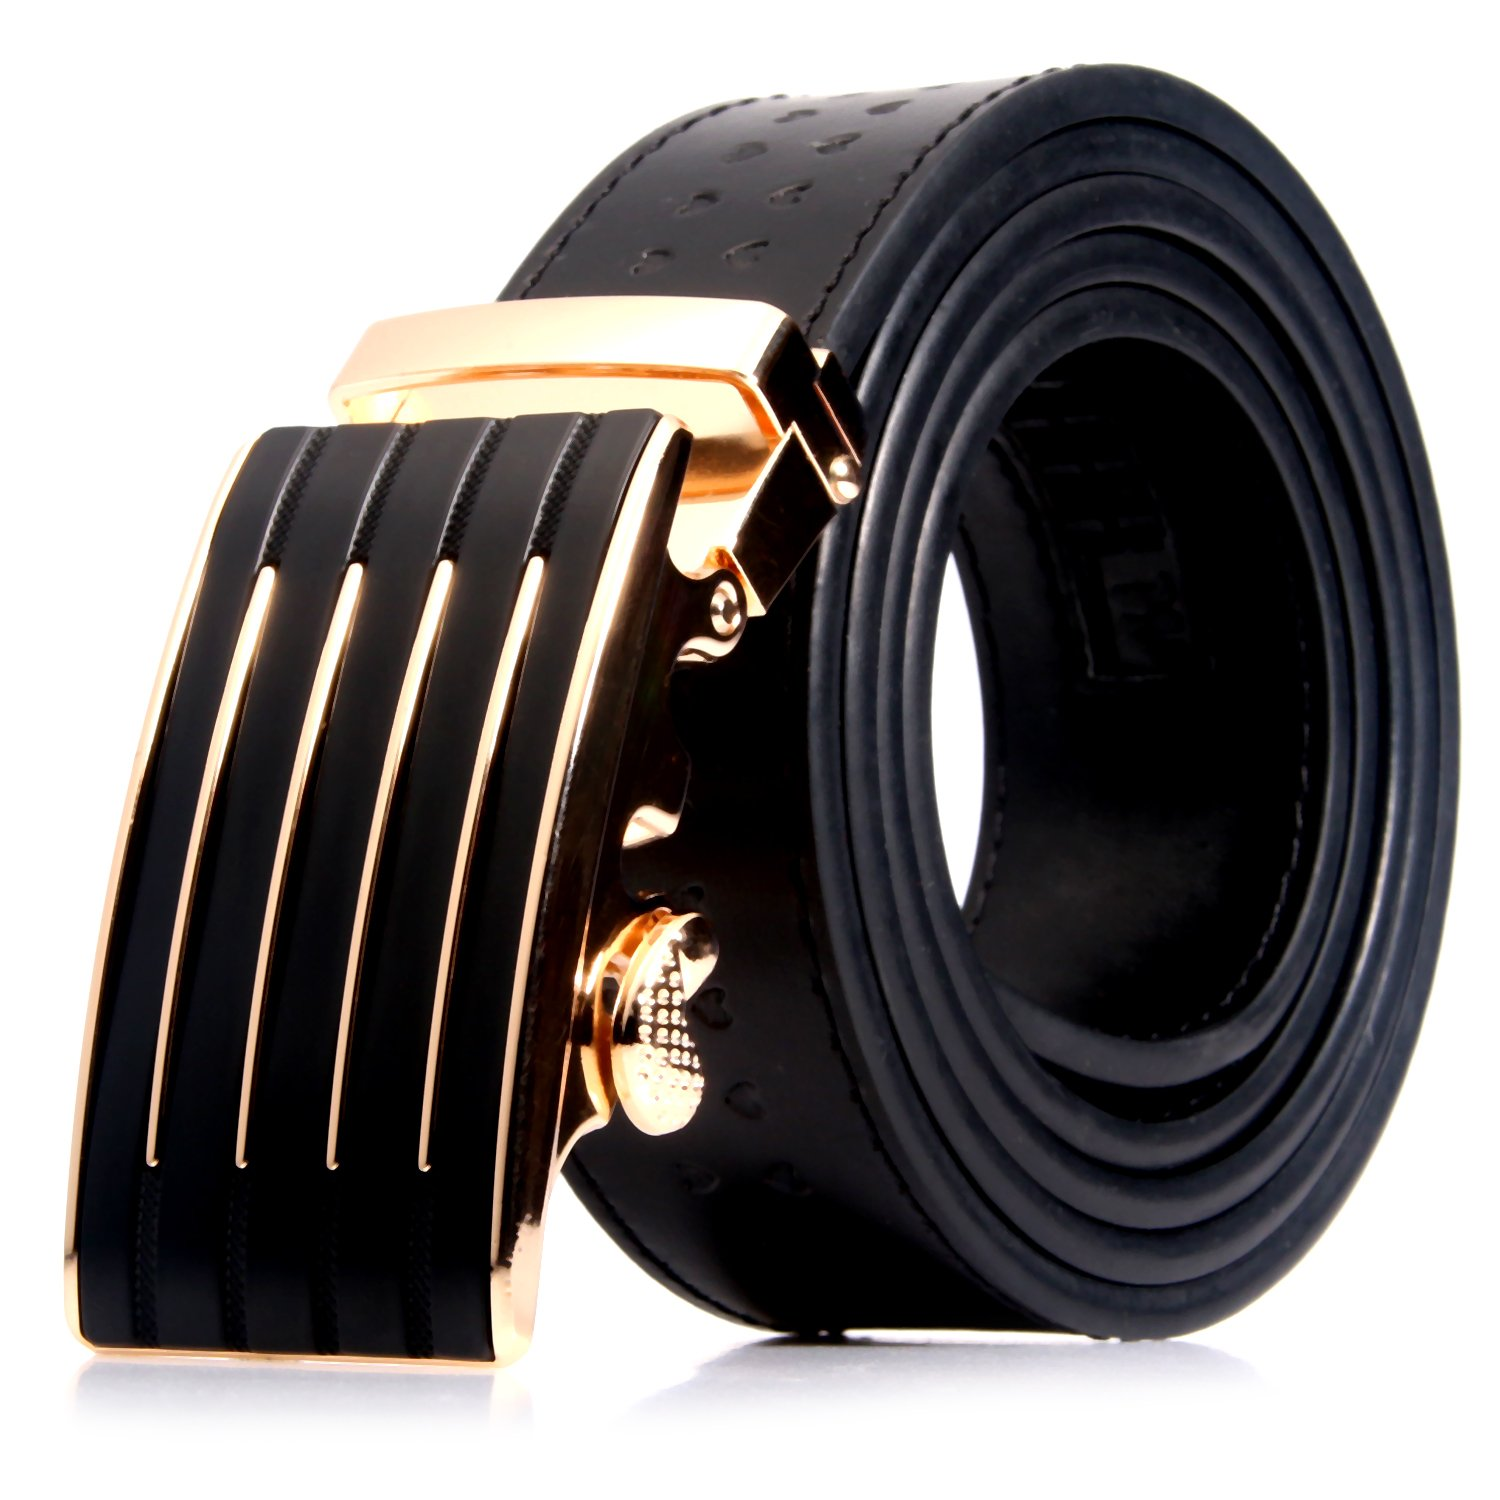 Men's Genuine Leather Belt with Automatic Buckle, Black/Brown, 35mm wide 1 3/8 inch-Great Gift Idea (Black embossed heart-style 4)